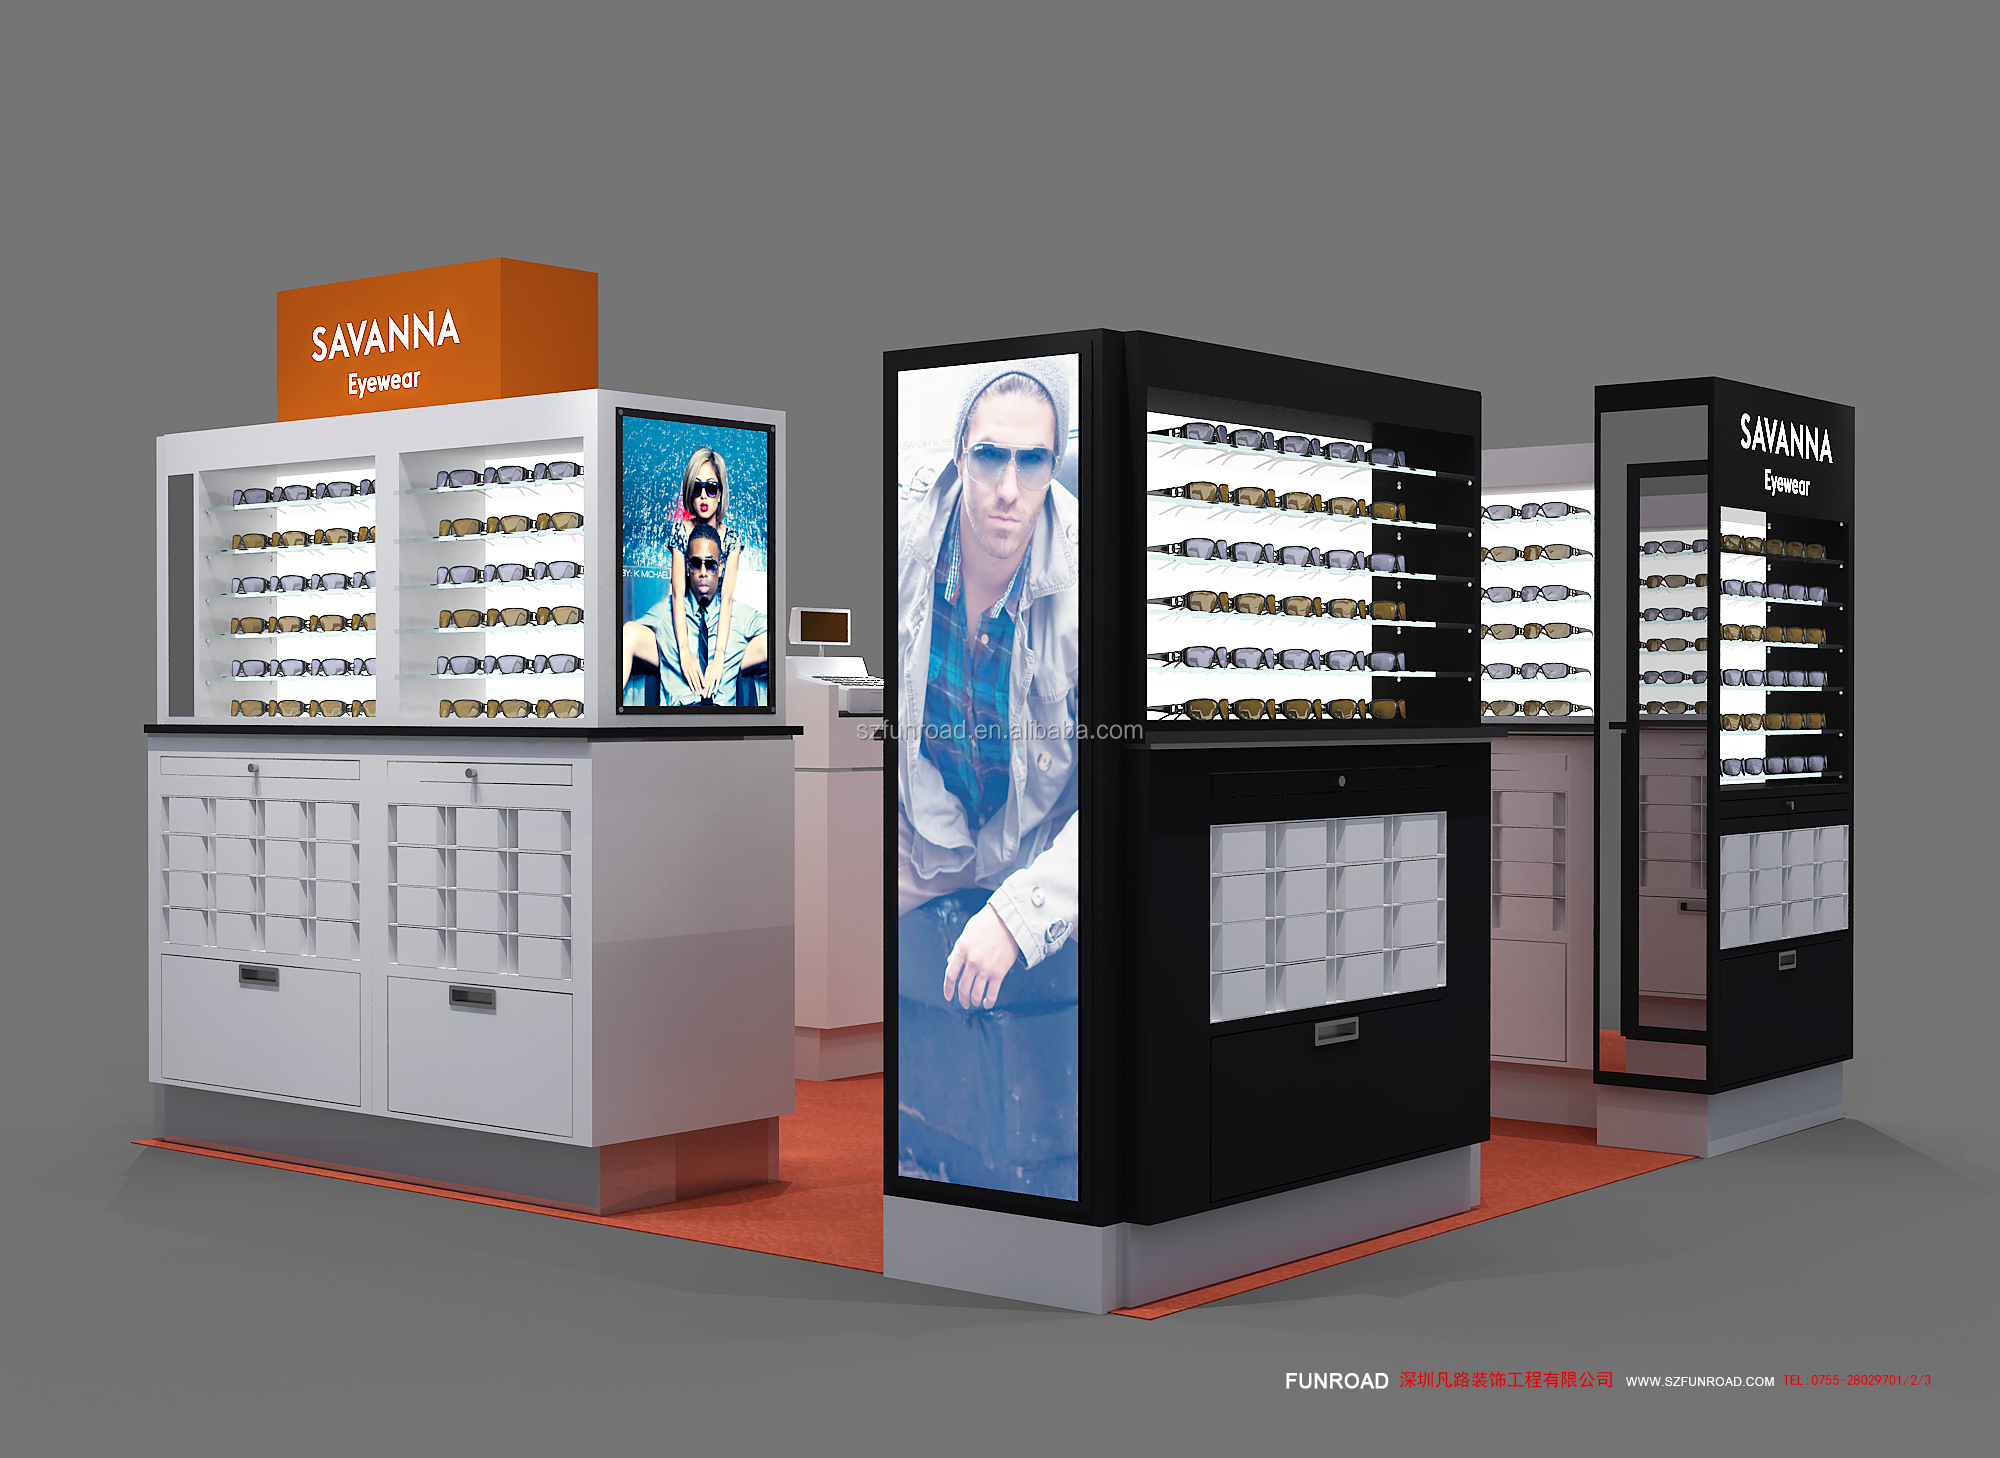 Funroad design and manufacturing 10*13ft glasses display kiosk in shopping mall for sale